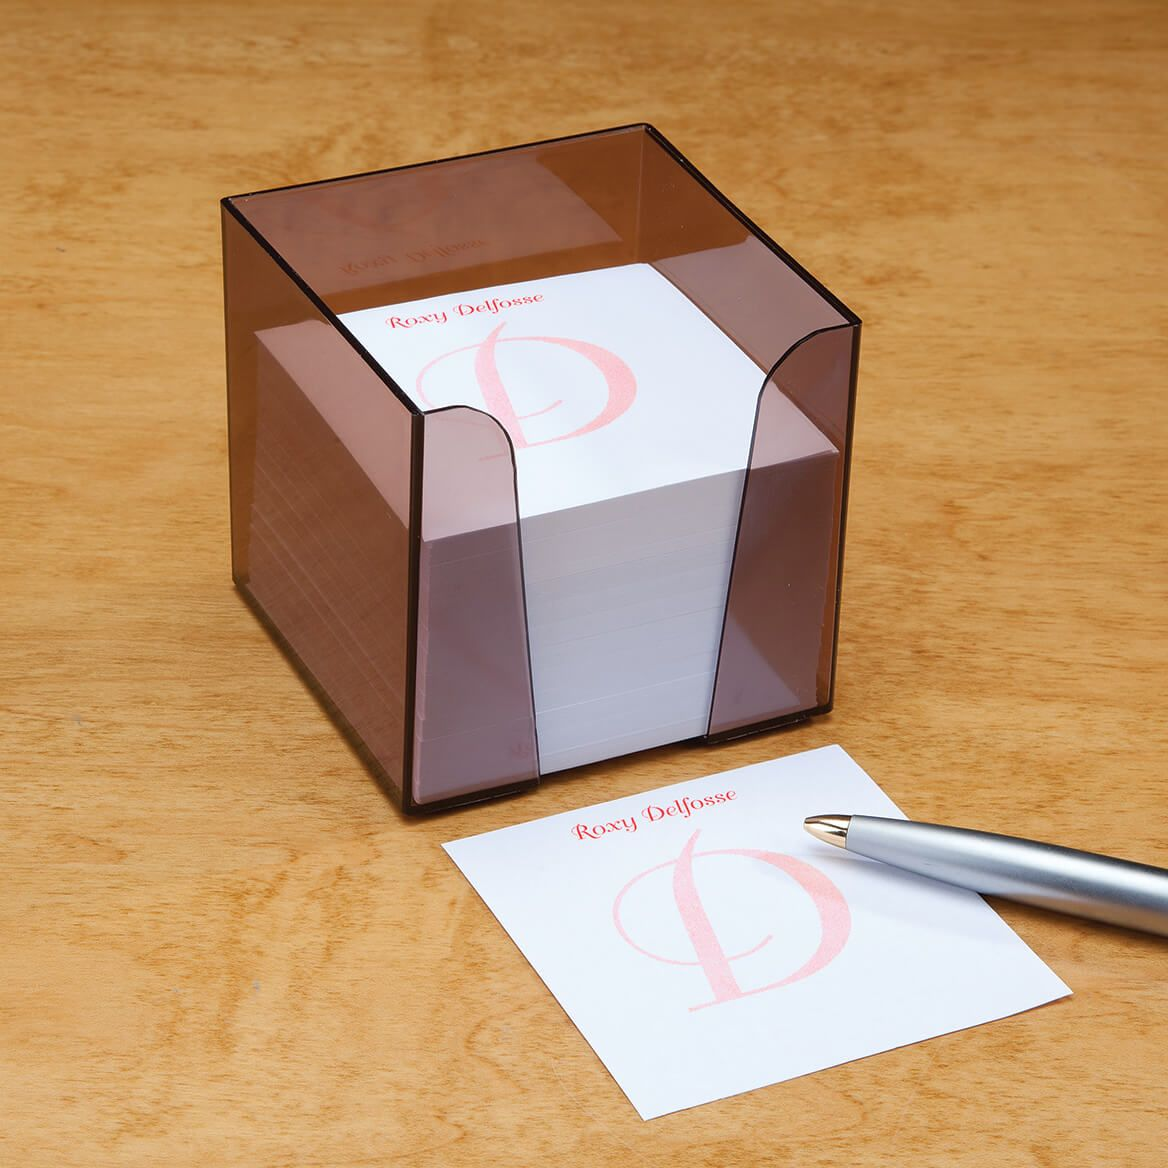 Personalized Note Sheets with Cube-346841